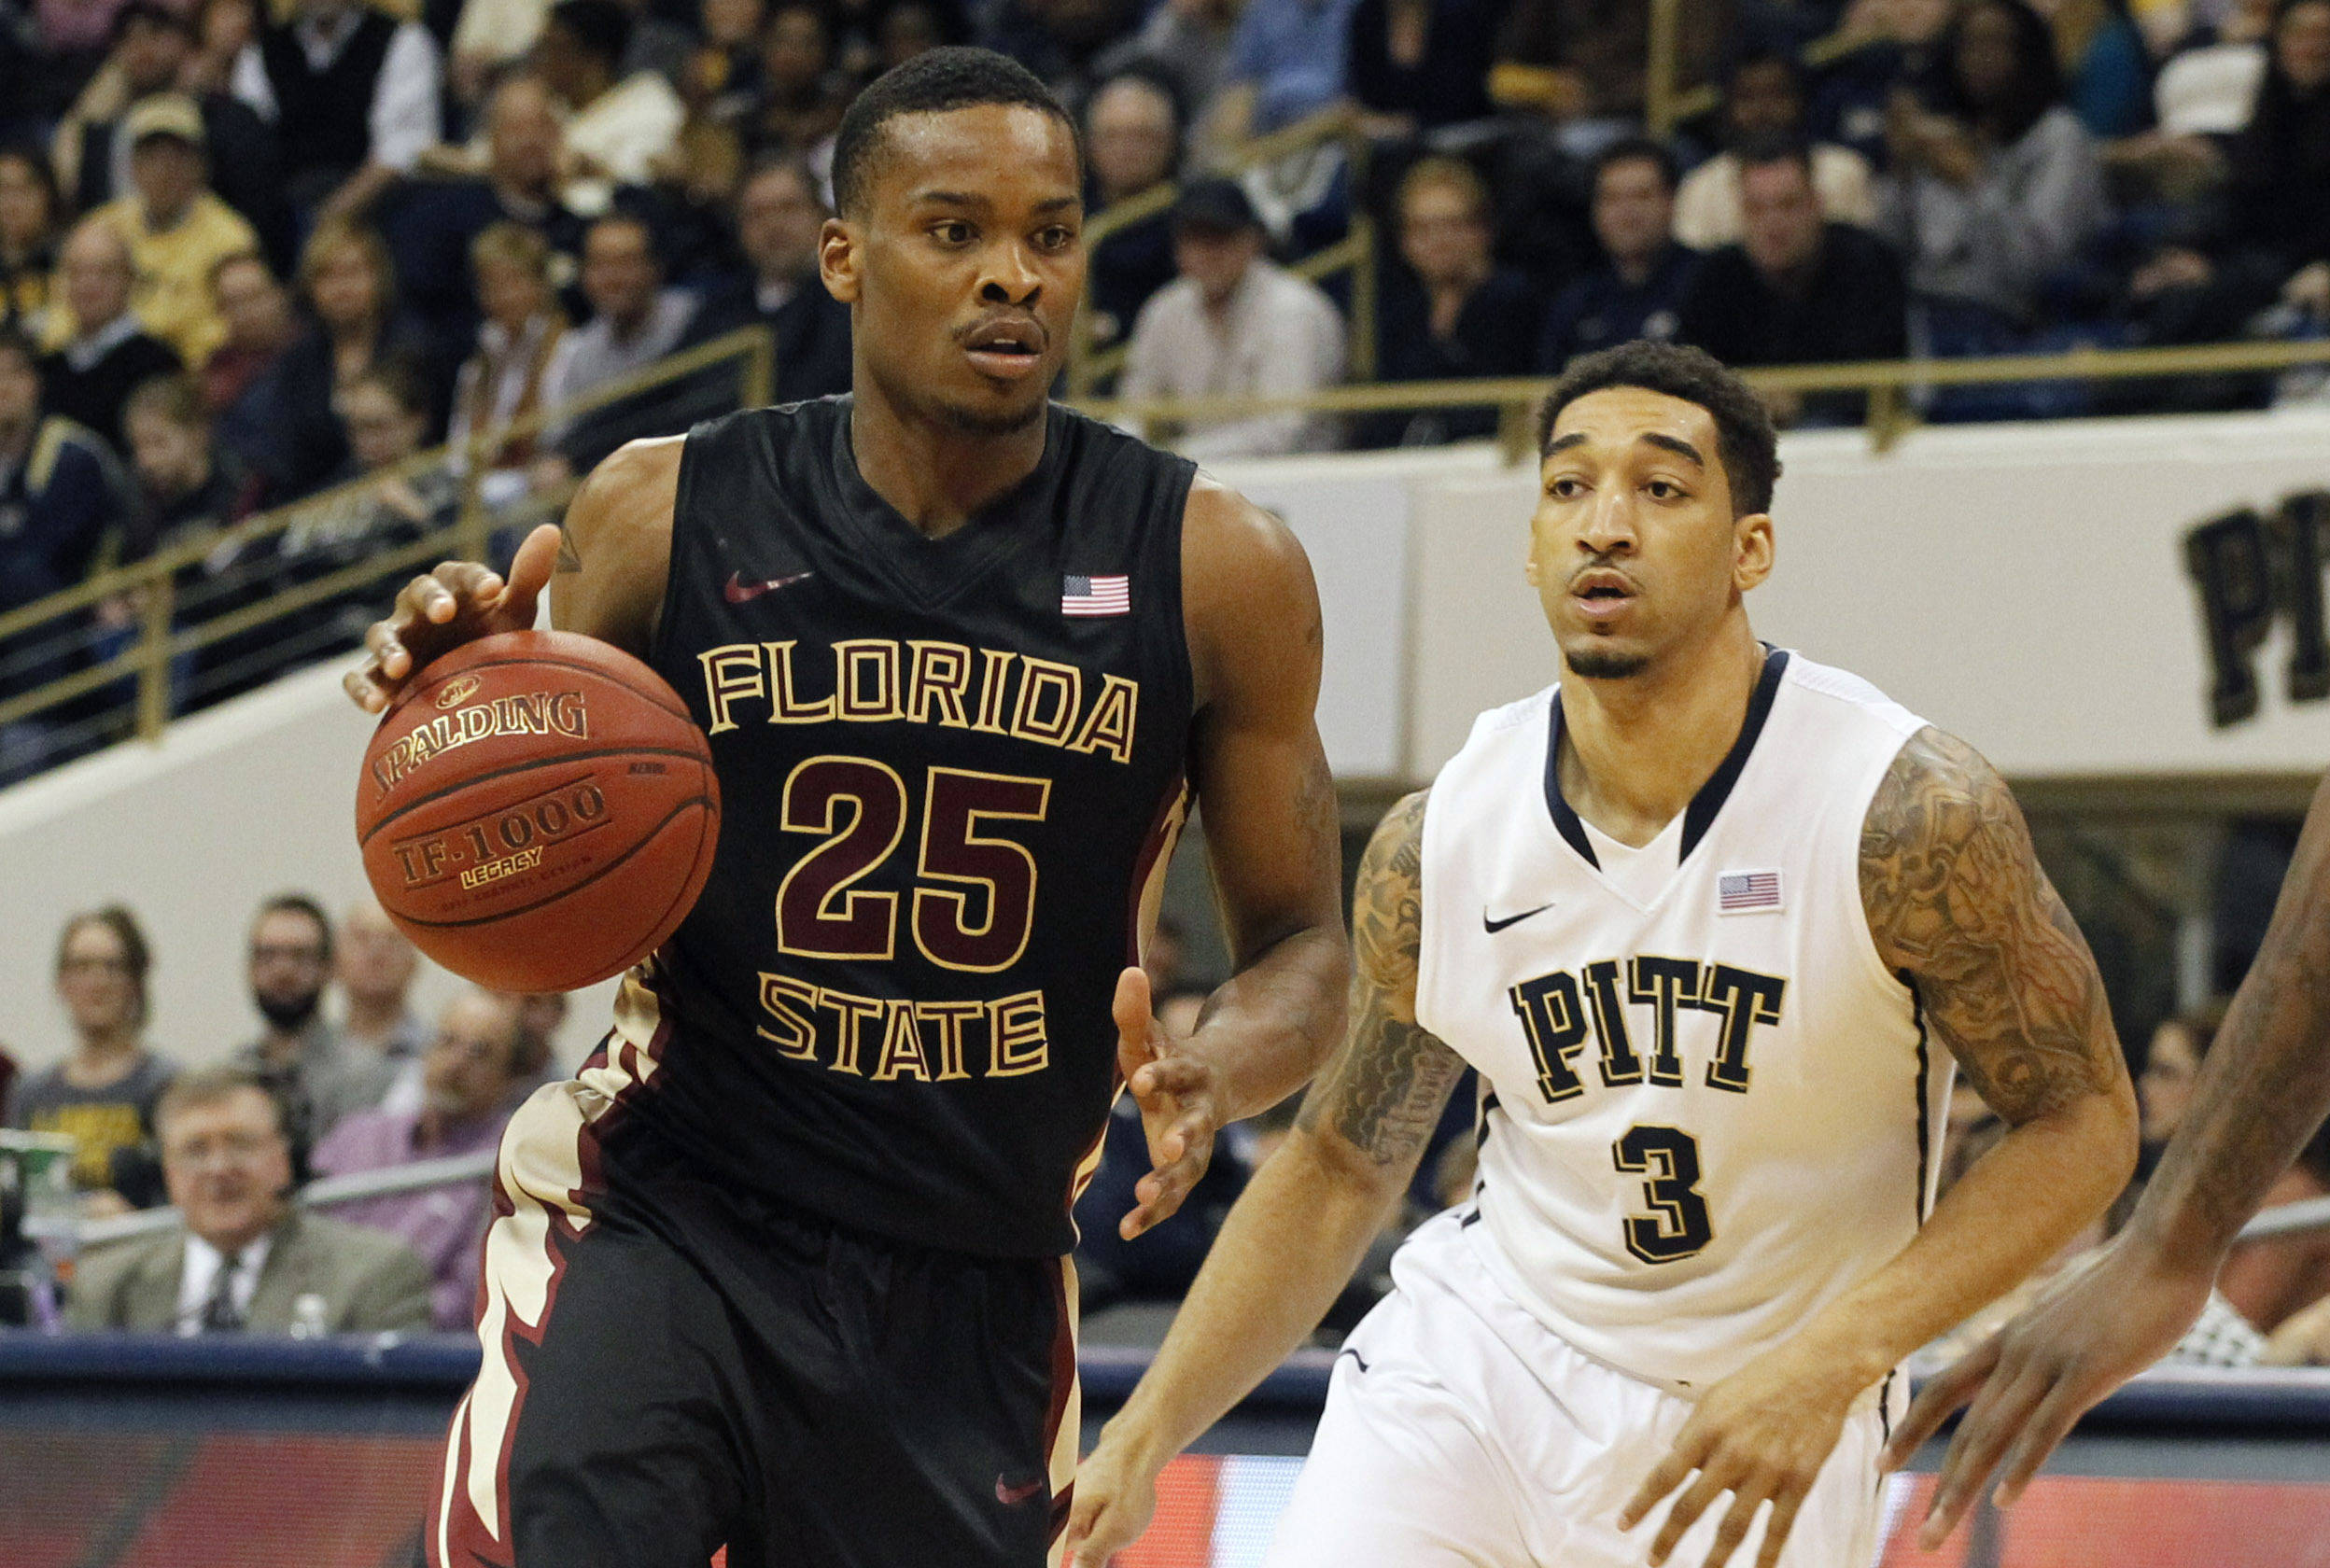 Florida State Seminoles guard Aaron Thomas (25) handles the ball against Pittsburgh Panthers guard Cameron Wright (3). (Charles LeClaire-USA TODAY Sports)